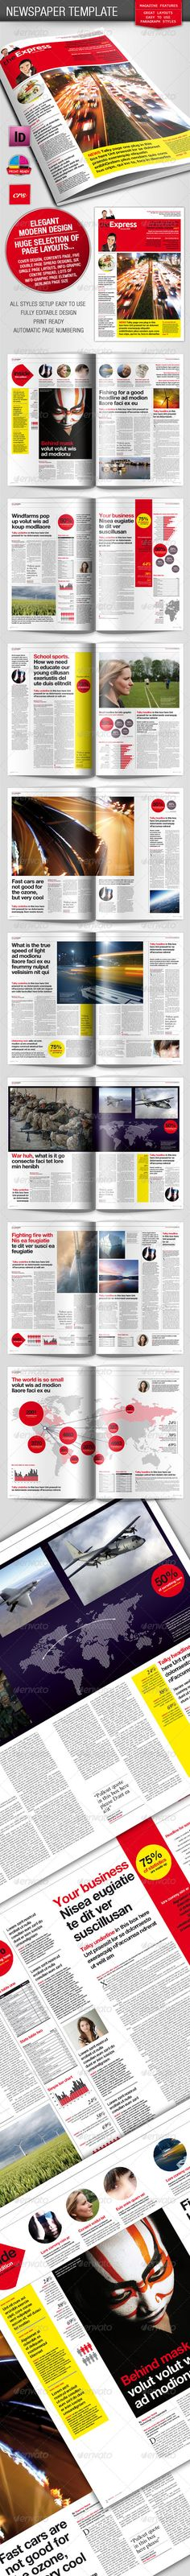 Broadsheet Newspaper Template | Newspaper Design | Pinterest